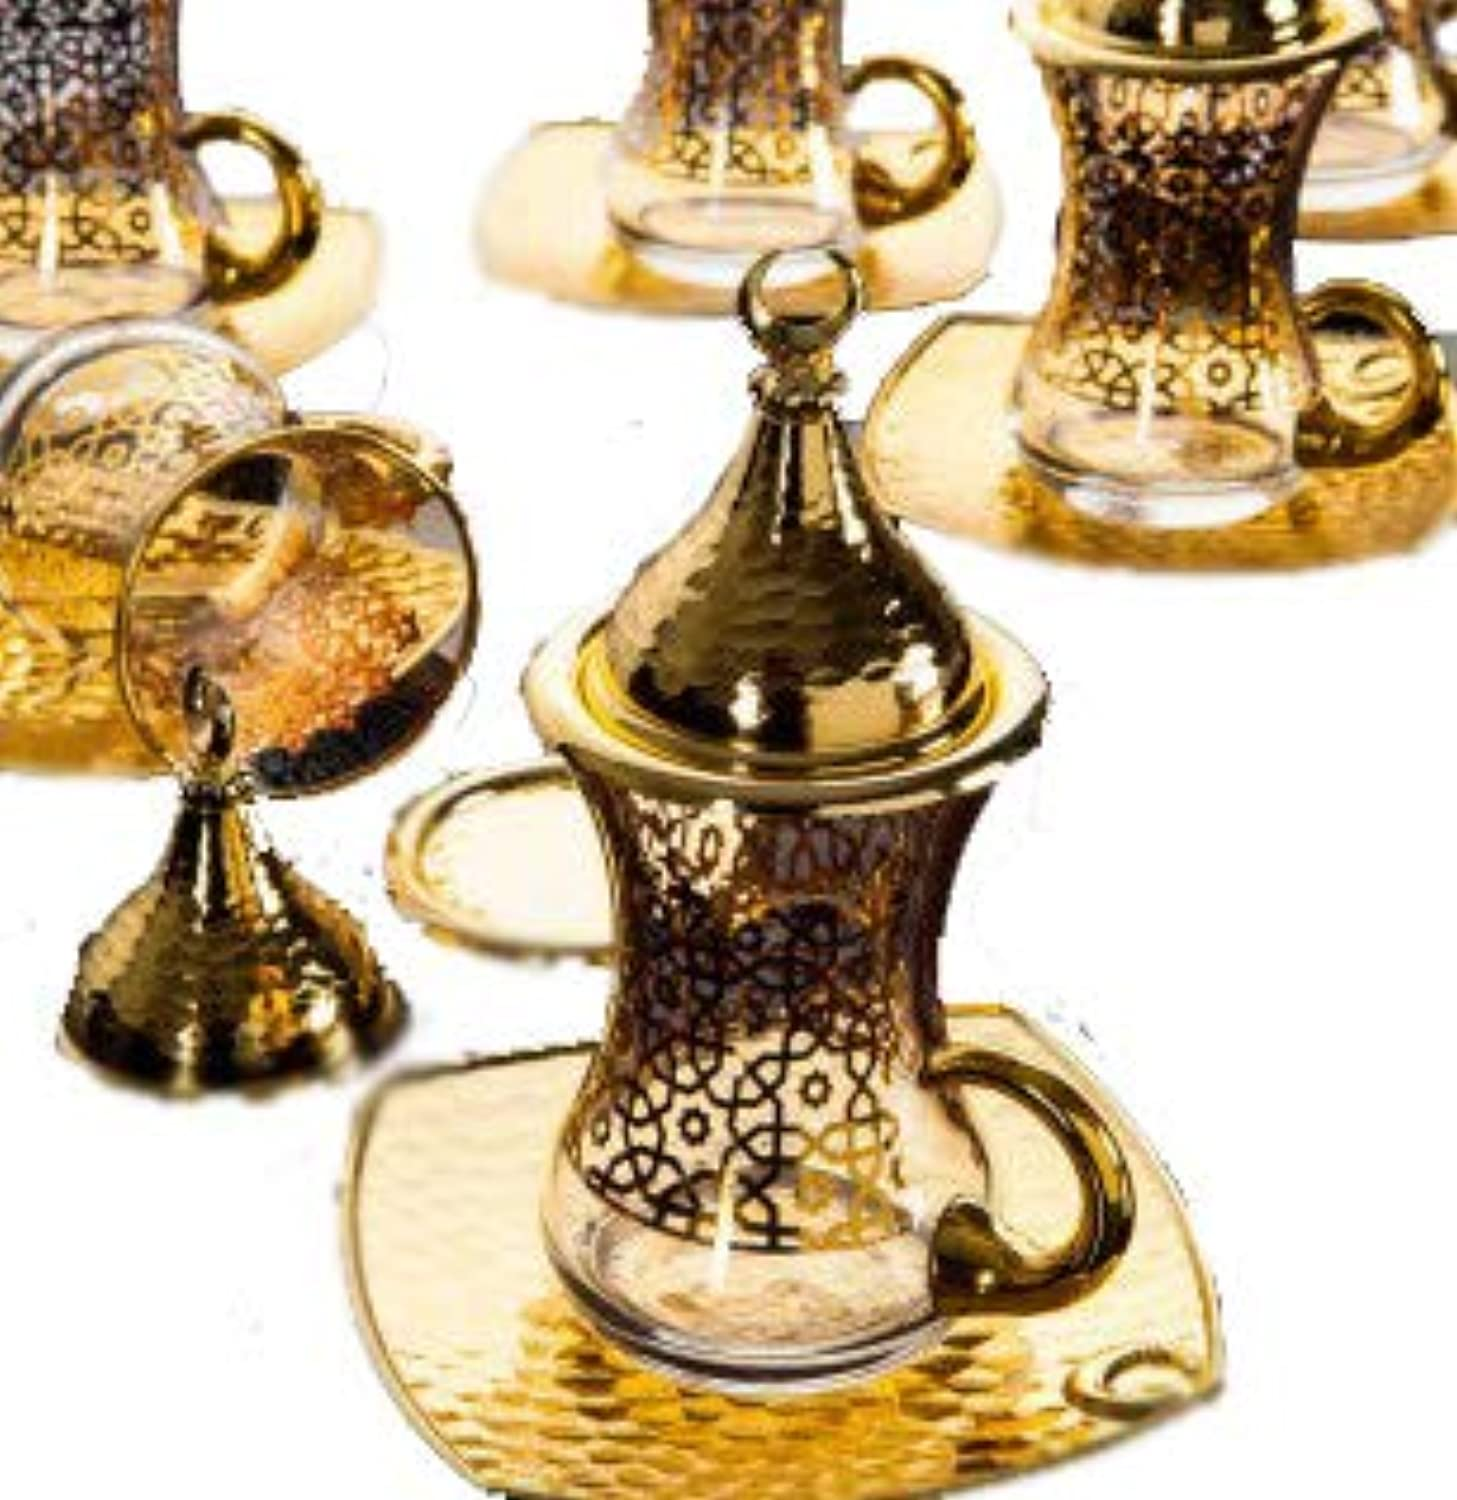 gold Case gold plated Gilded Turkish Tea Glasses Set for 6 - Made in Turkey - 24 pieced set, Gilded-gold